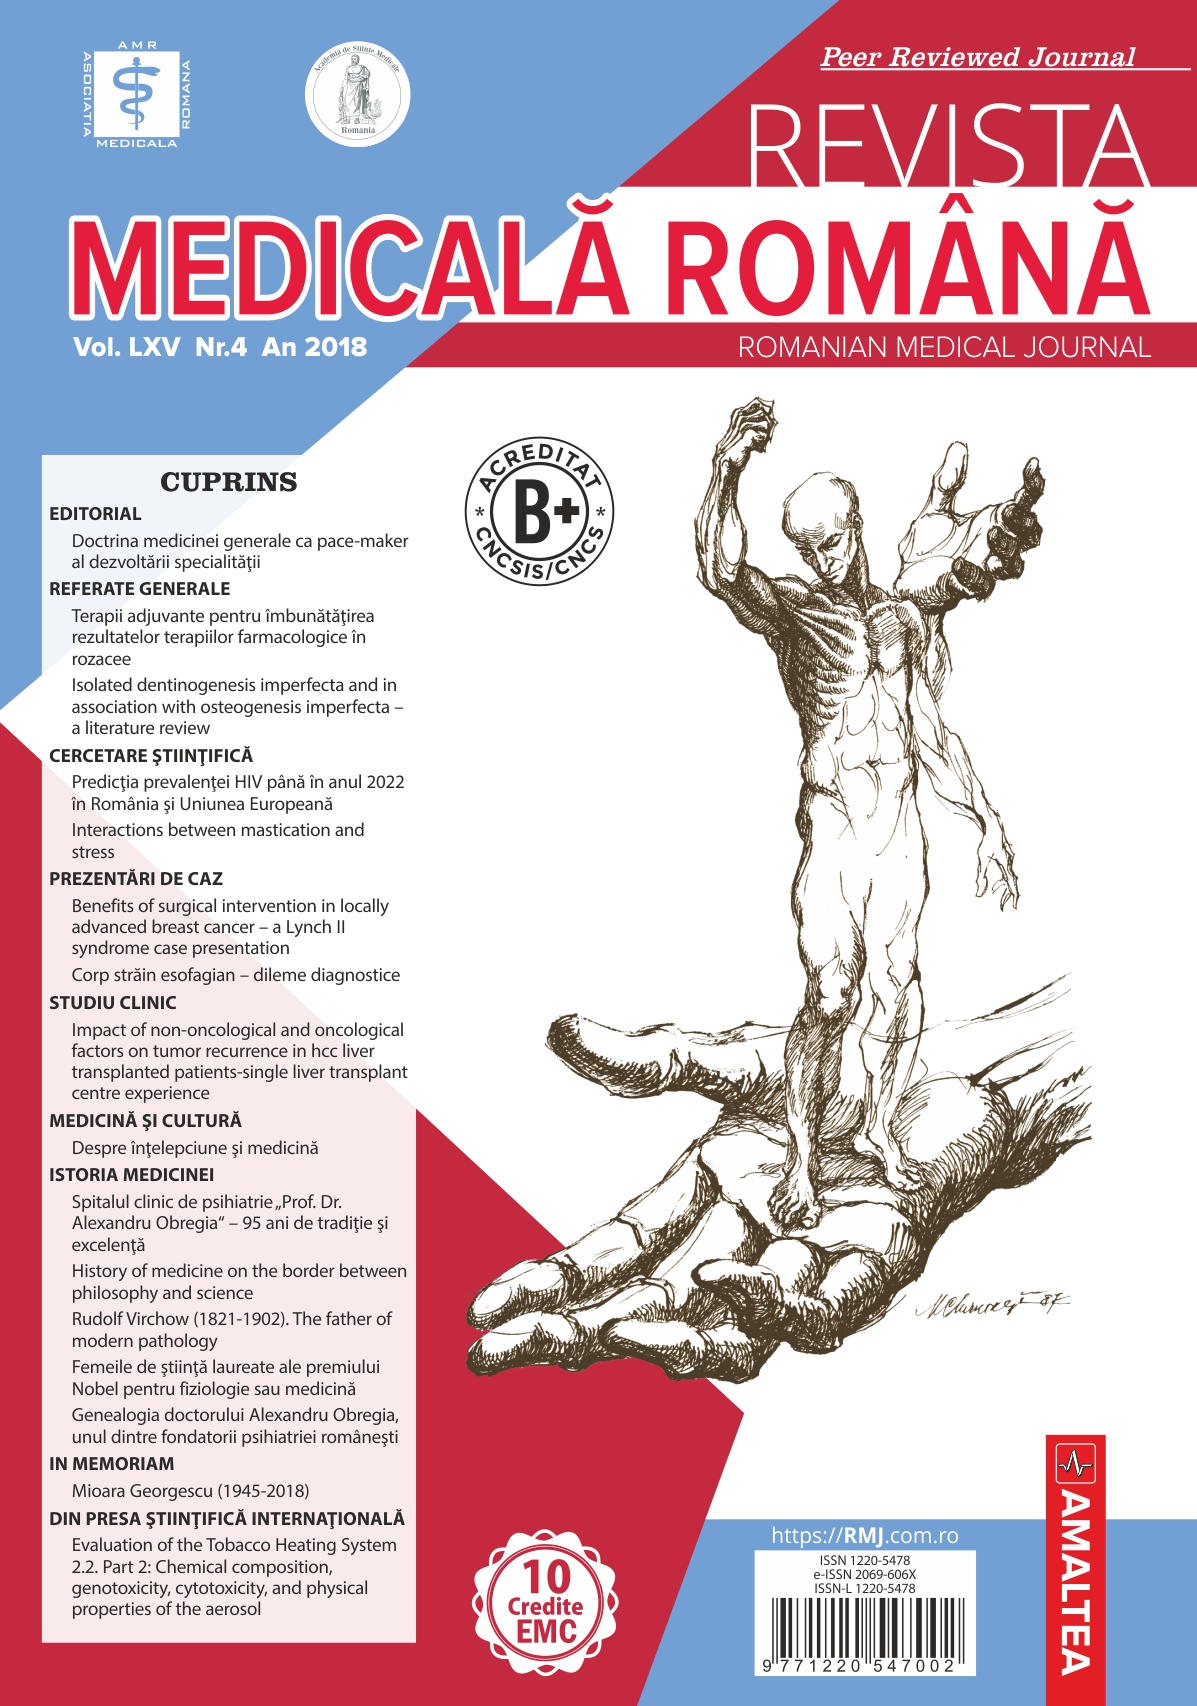 REVISTA MEDICALA ROMANA - Romanian Medical Journal, Vol. LXV, No. 4, Year 2018